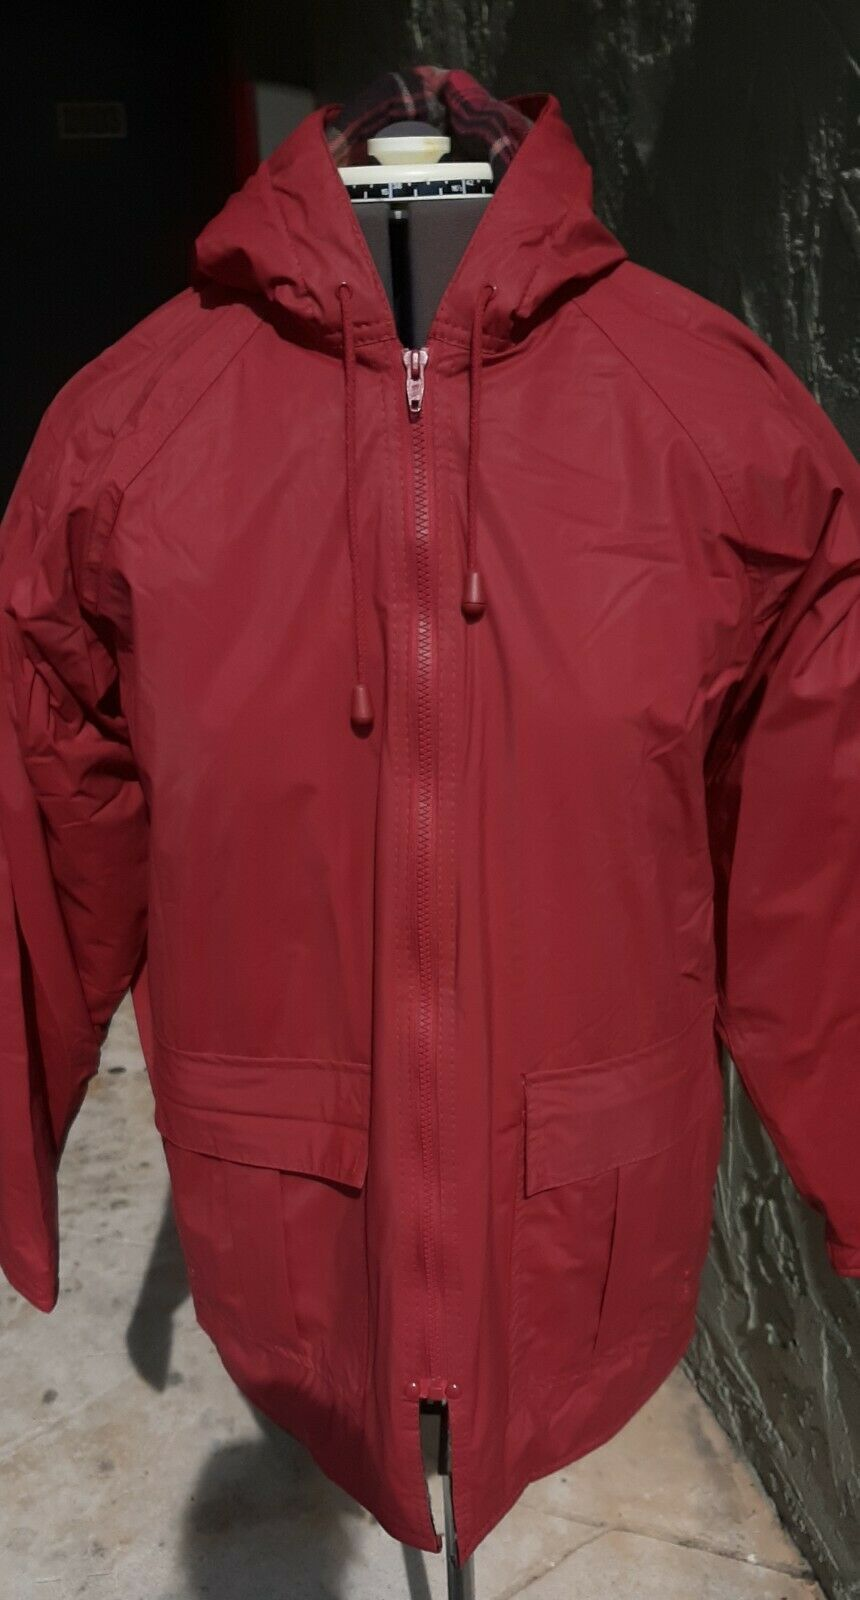 Primary image for Women's Misty Harbor Red Quilt Lined Rain Coat Size Small